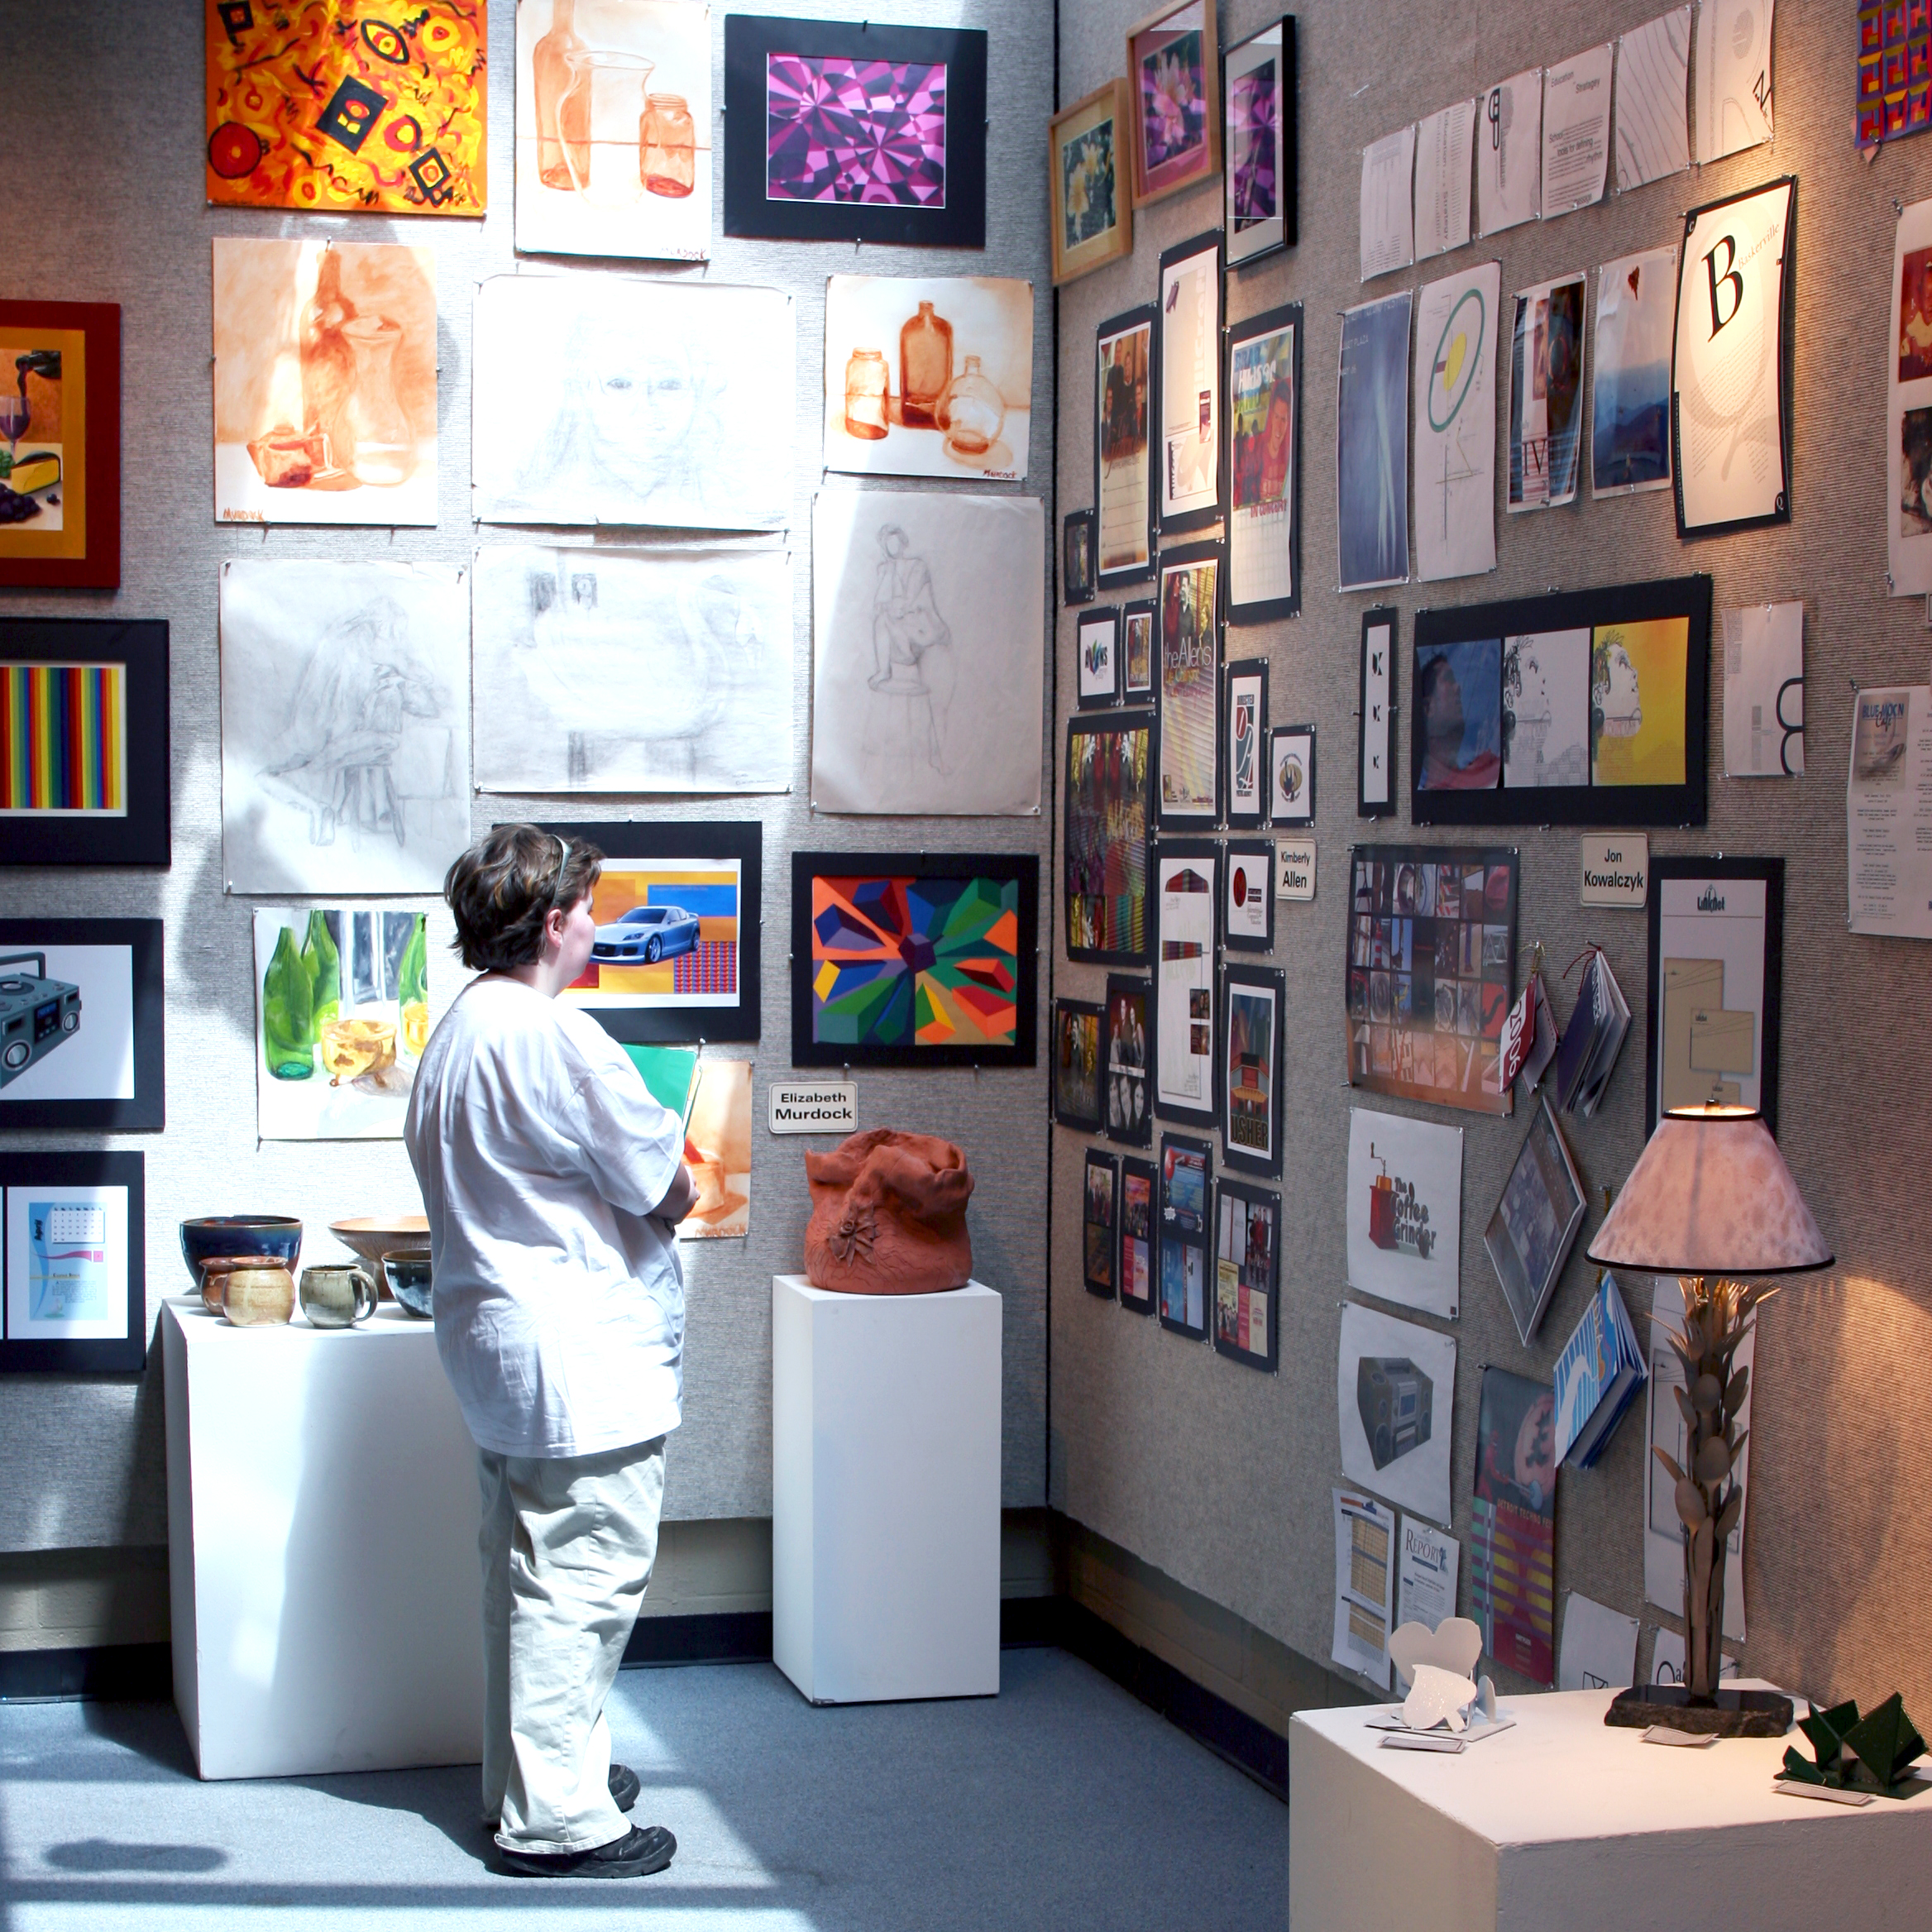 Student views two walls covered in a vast array pf framed artwork created by HFC students.